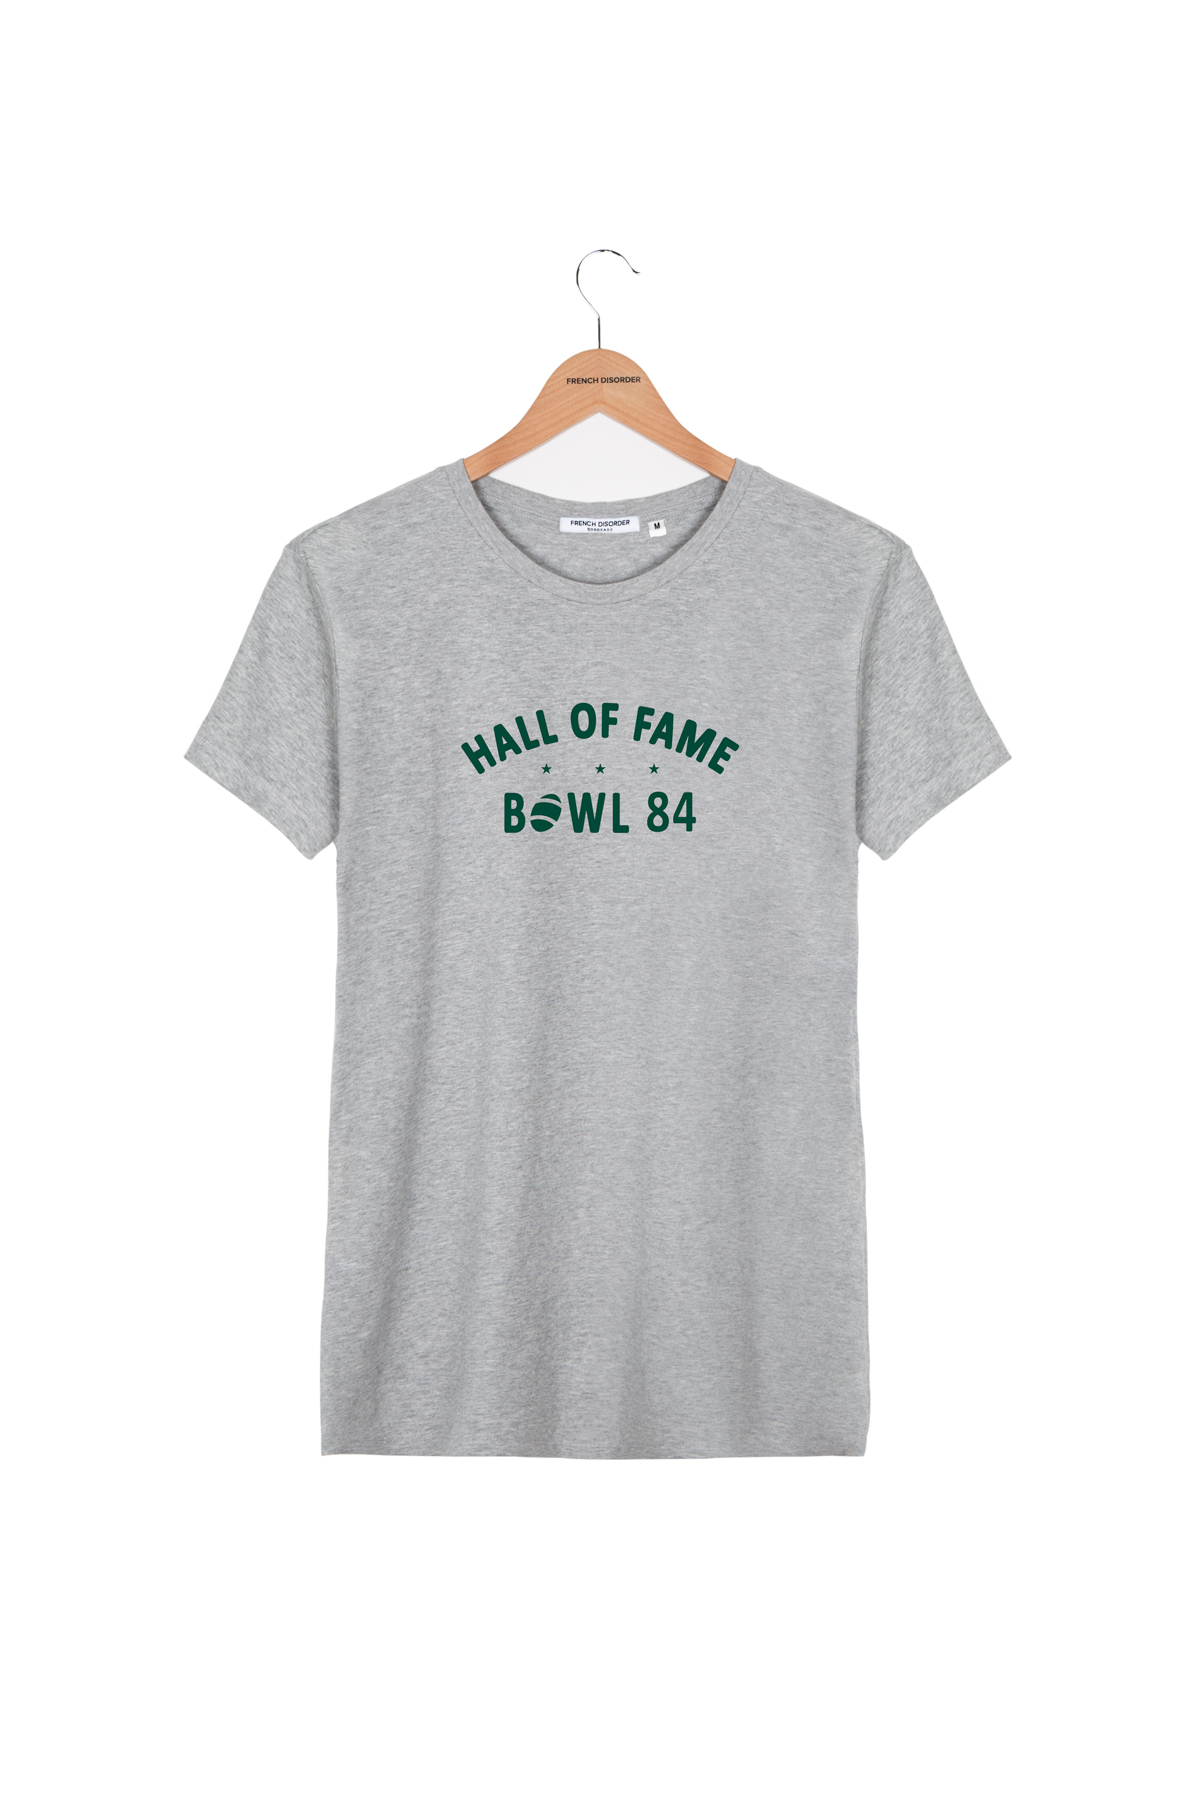 T-shirt HALL OF FAME French Disorder